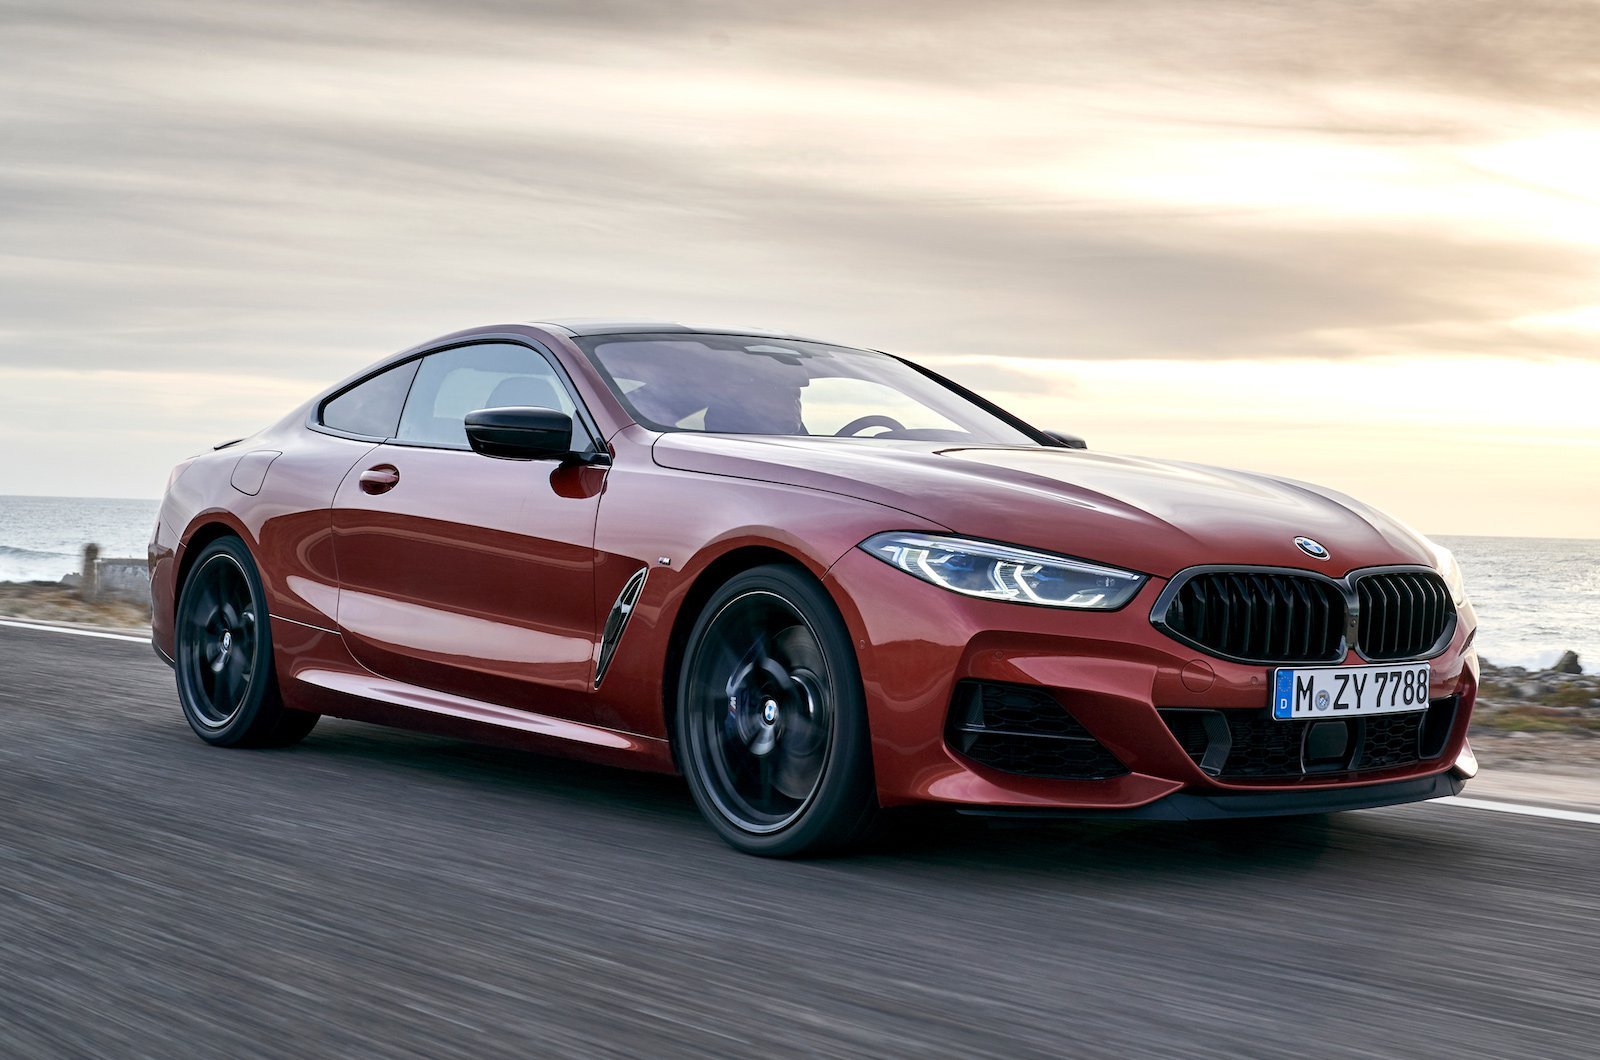 2019 Bmw 8 Series M850i Xdrive Review Price Specs And Release